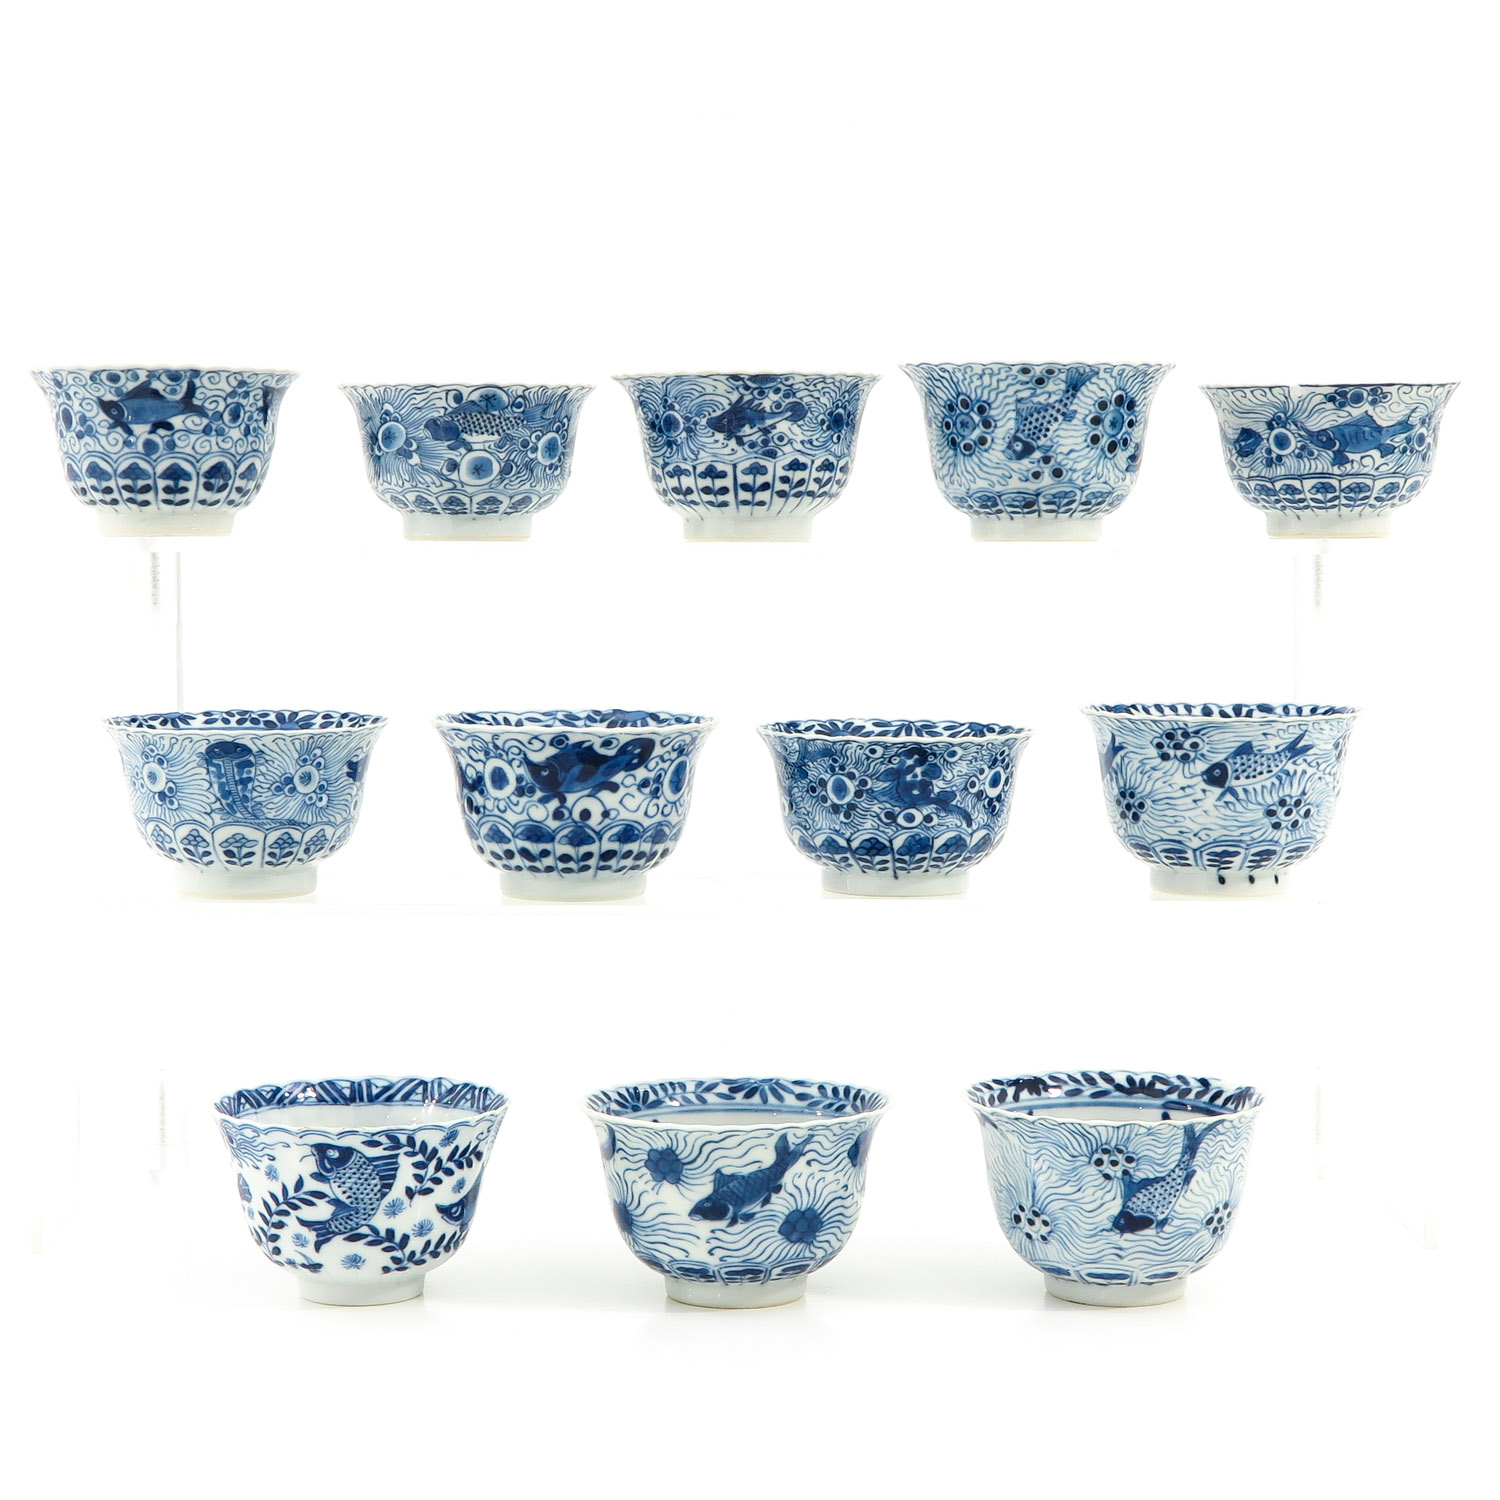 A Series of 12 Cups and Saucers - Image 4 of 10